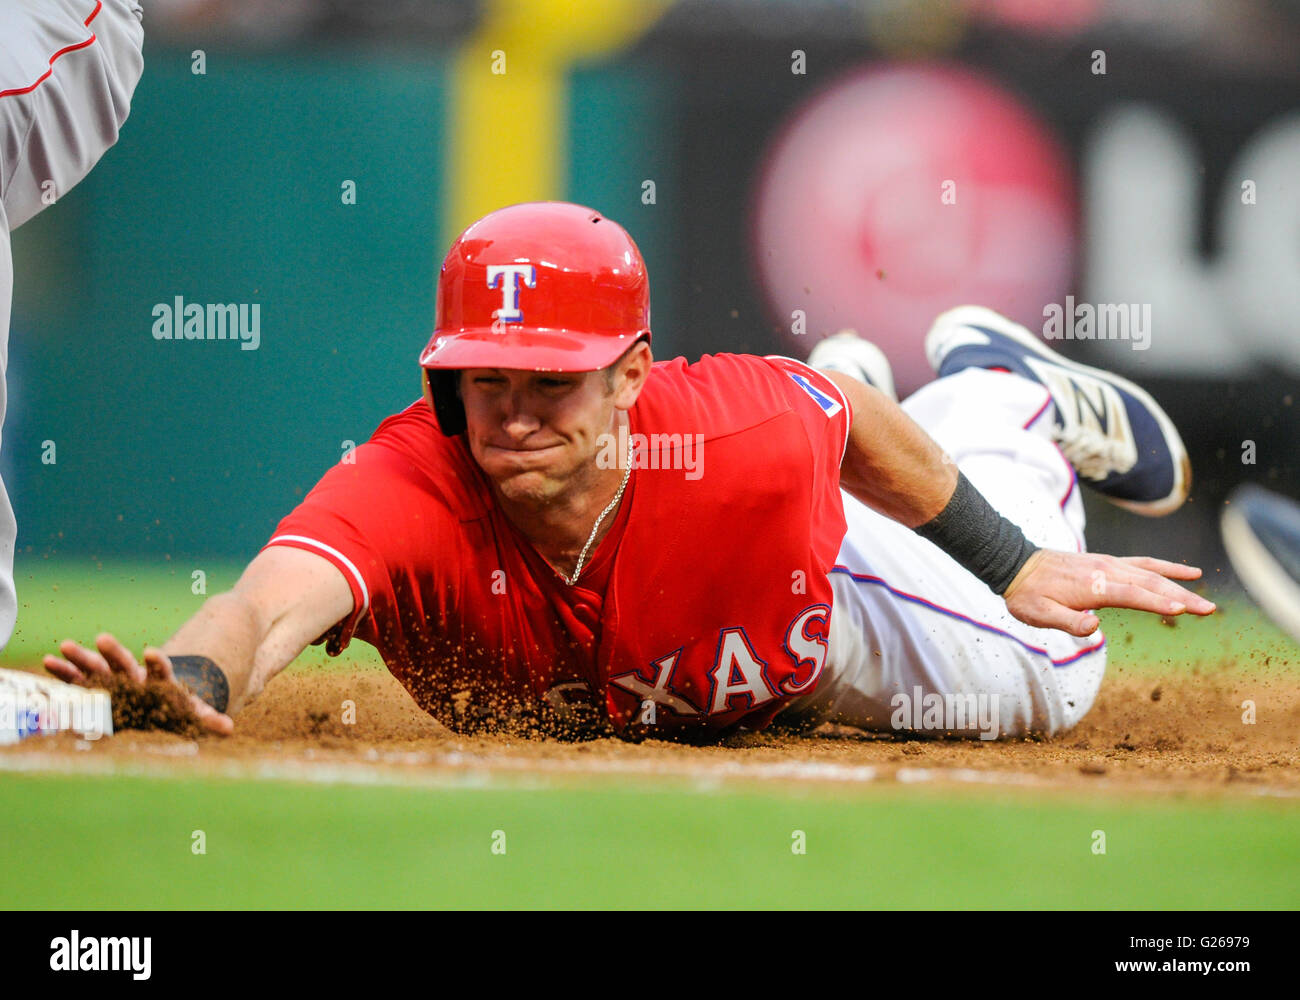 Arlington, Texas, USA. 24 mai, 2016. Le voltigeur des Texas Rangers Jared Hoying # 36 dives retour à la Photo Stock